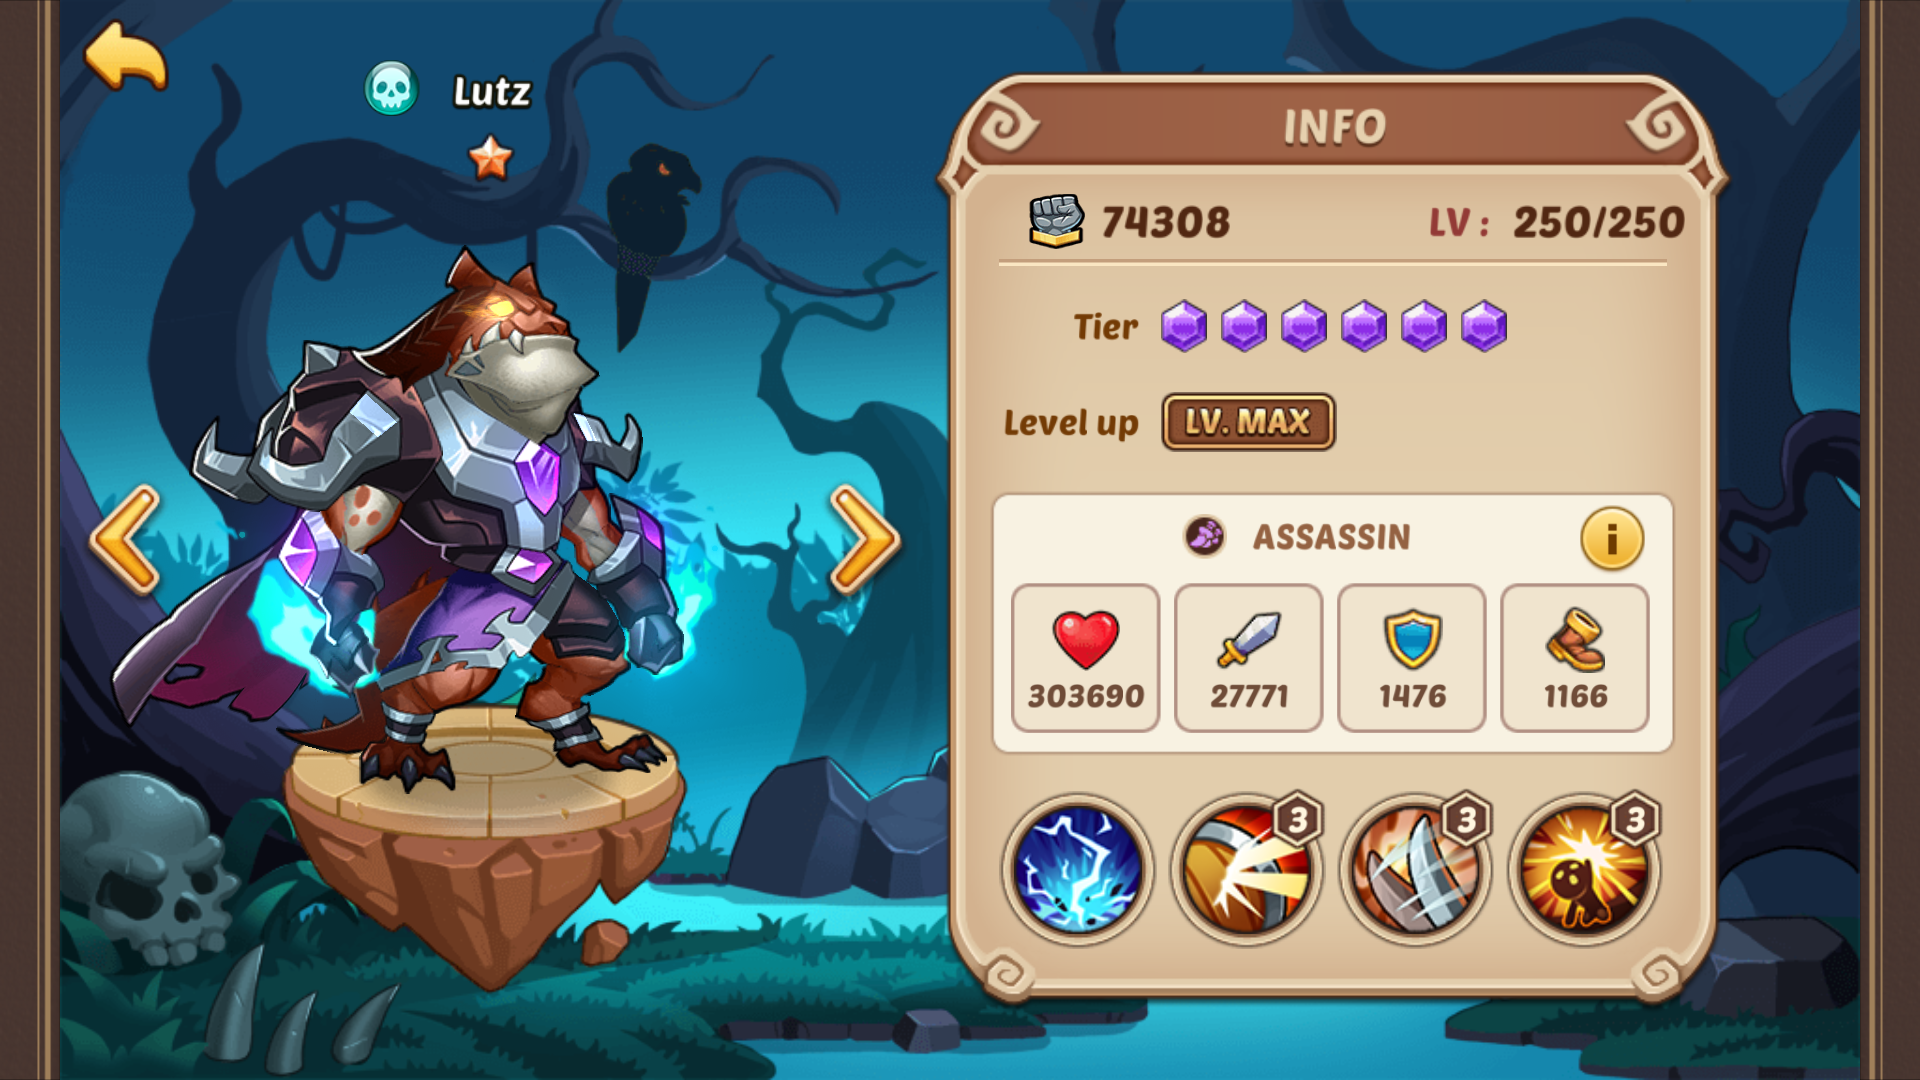 Lutz | IdleHeroes Wiki | FANDOM powered by Wikia